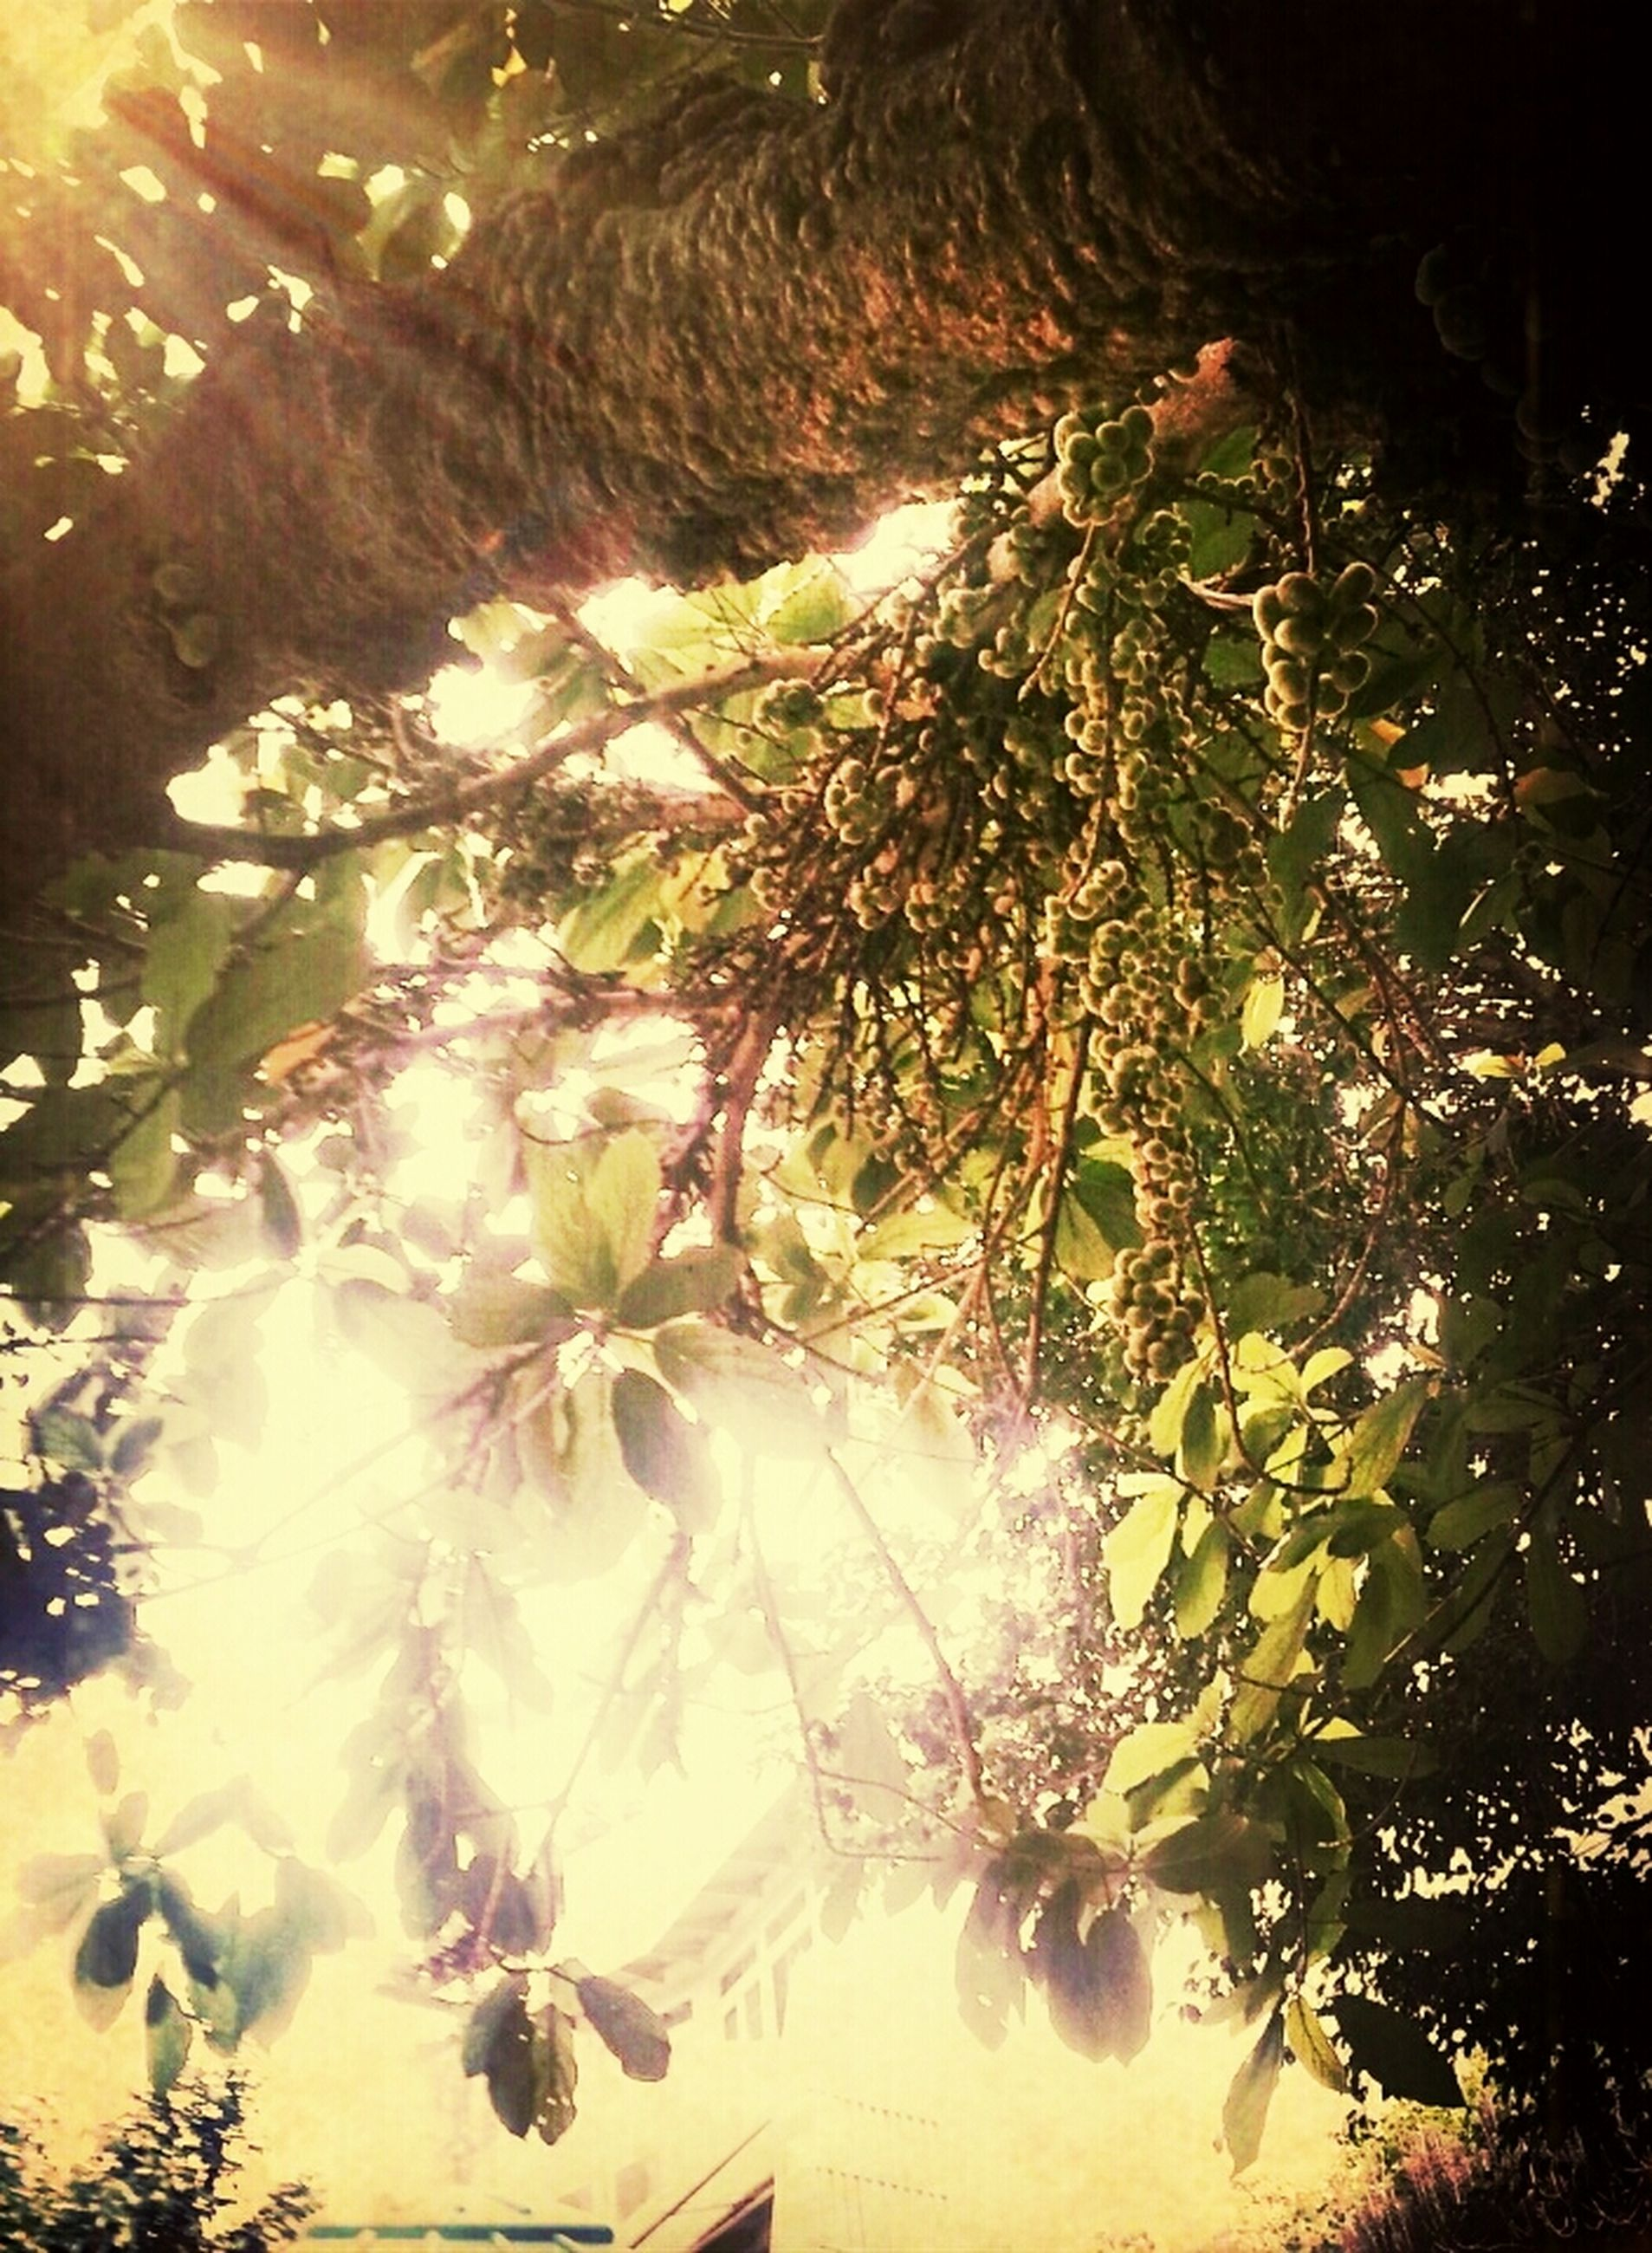 tree, growth, sunlight, nature, branch, beauty in nature, plant, sunbeam, low angle view, tranquility, no people, night, outdoors, lens flare, leaf, flower, freshness, illuminated, shadow